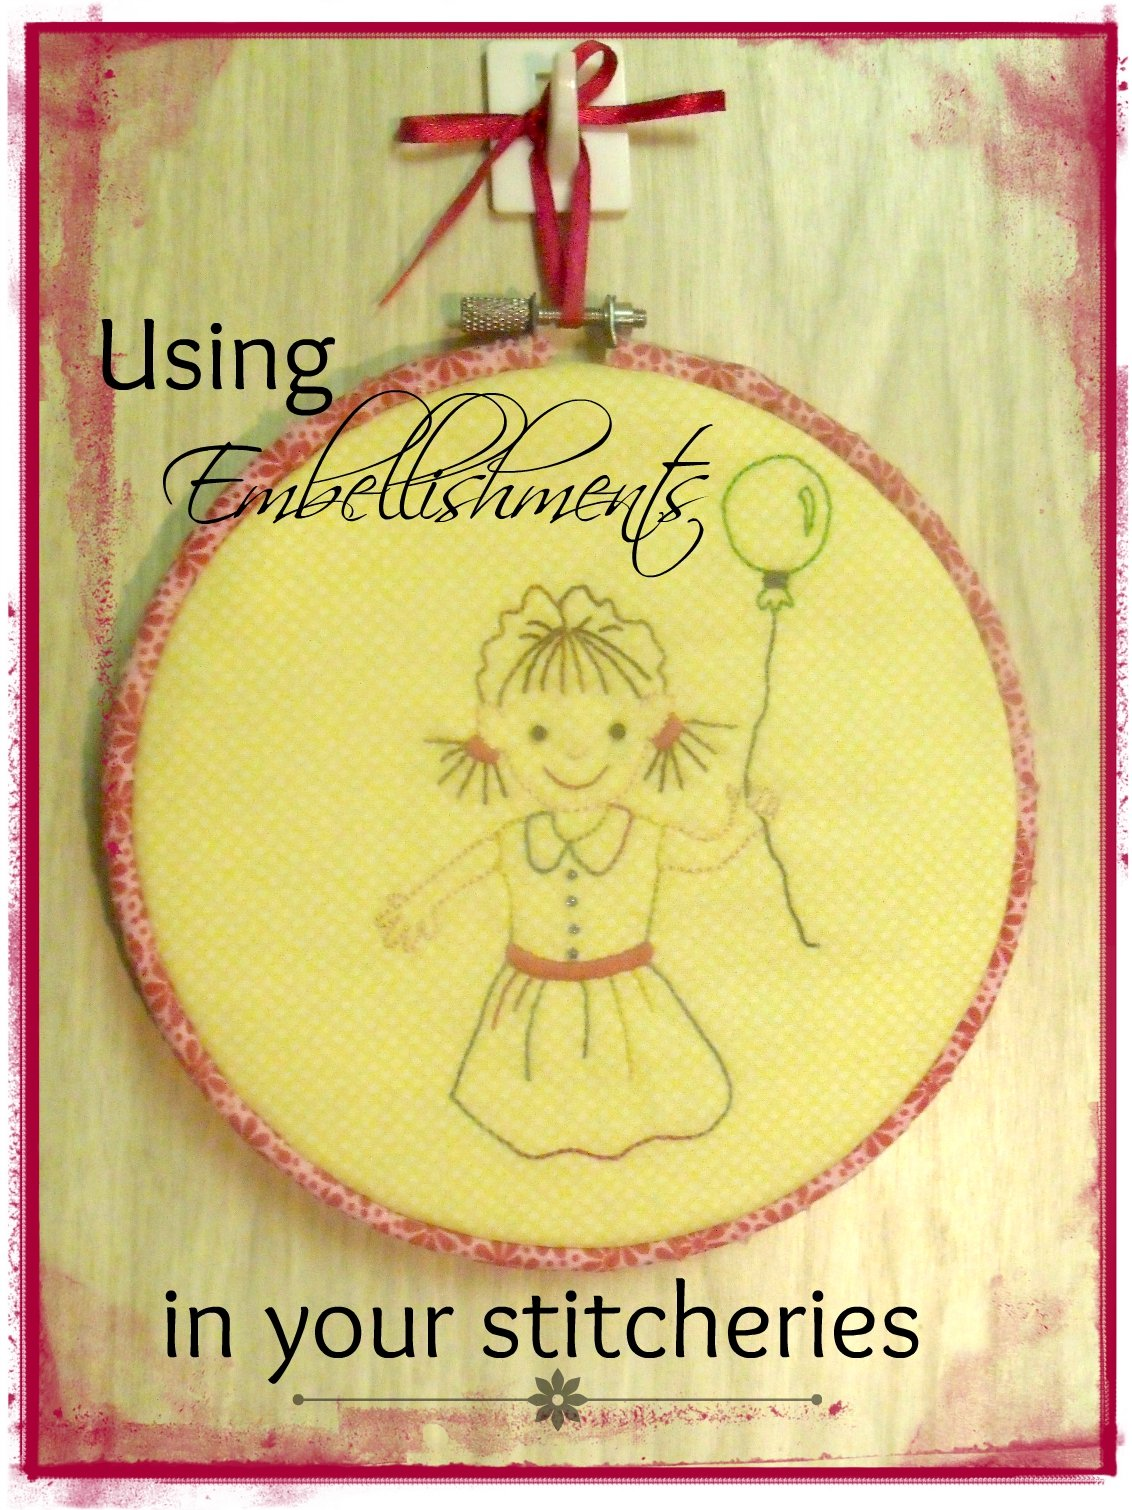 Using Embellishments in your Stitcheries